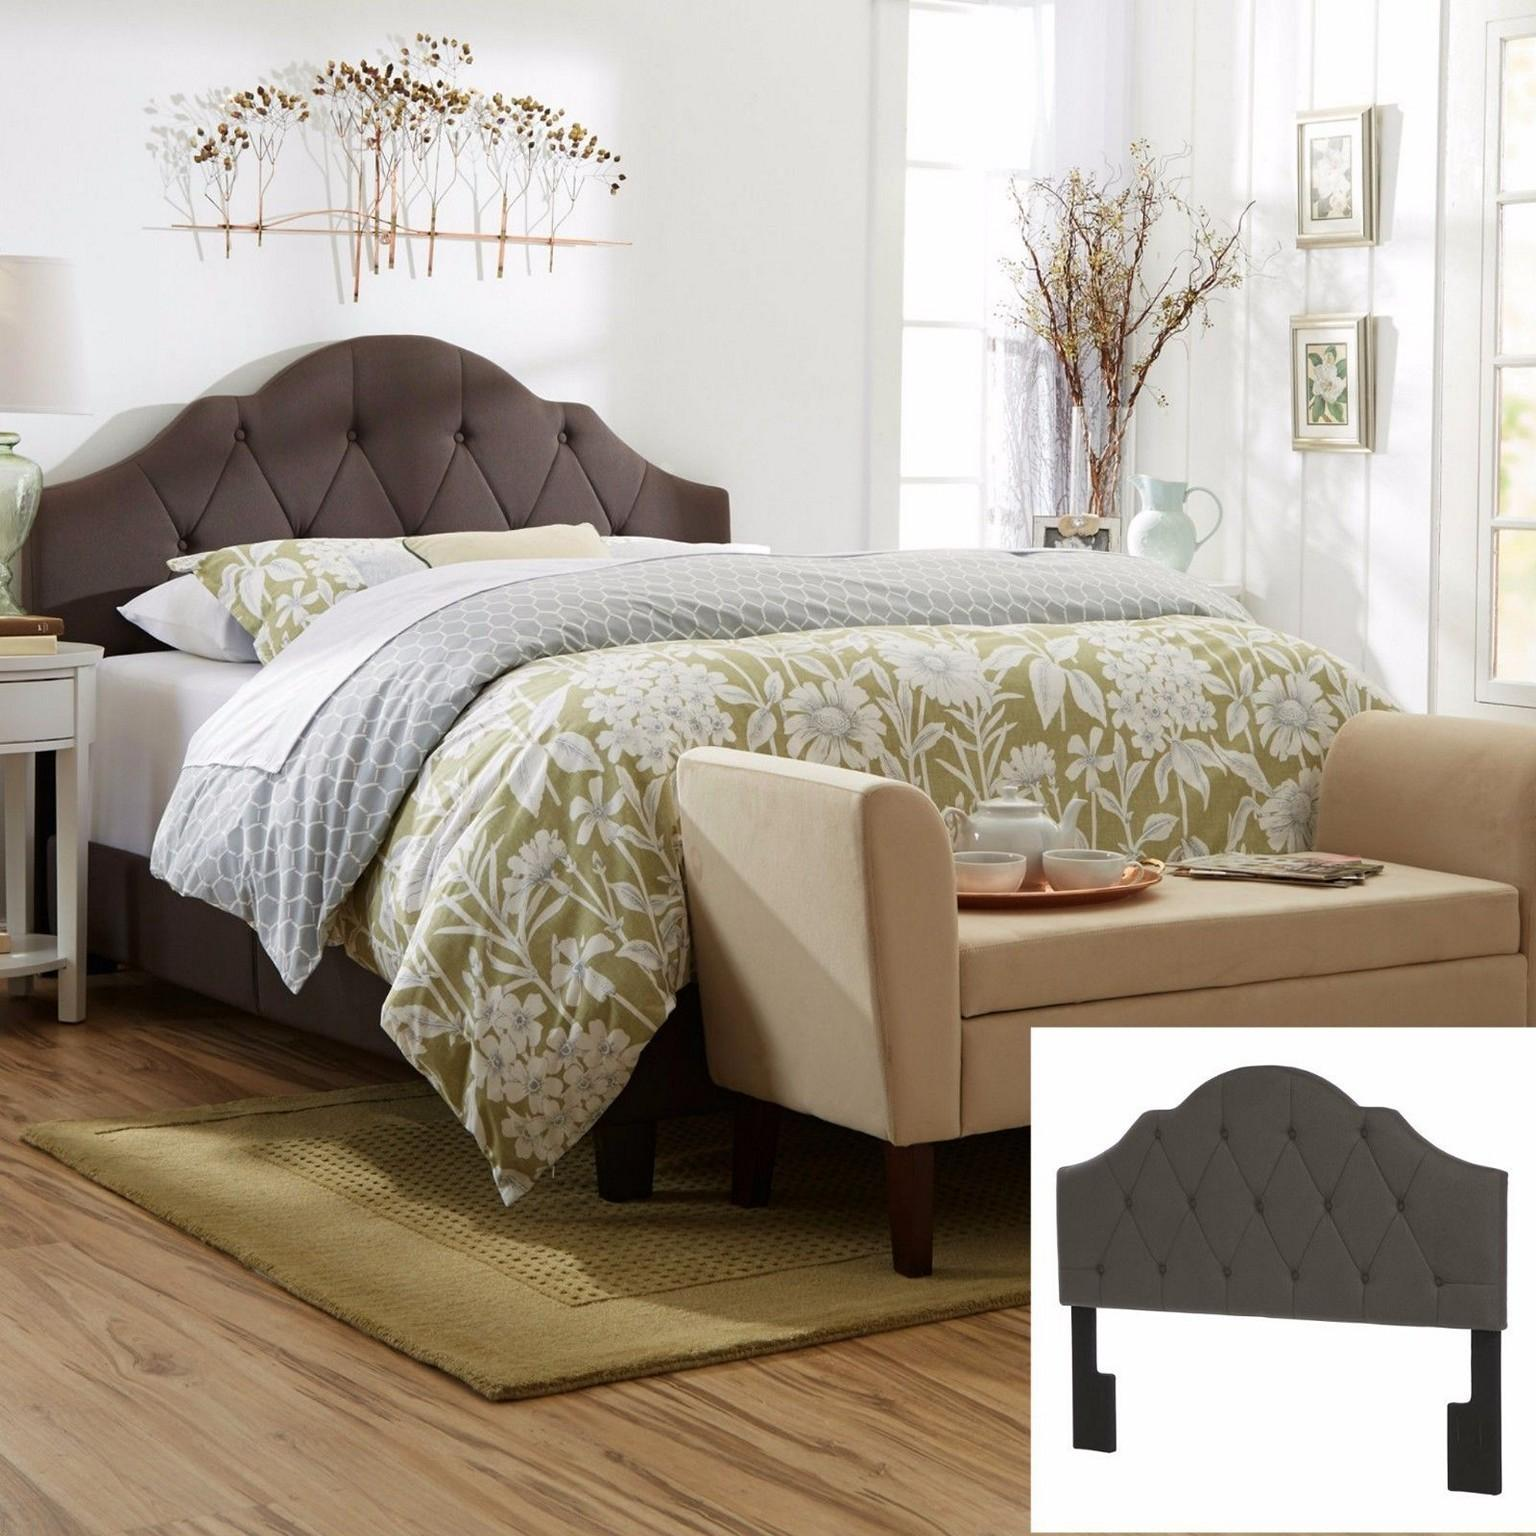 Crazy Upholstered Headboard Ideas That Abound With Luxury For 2020 Stunning Photos Decoratorist